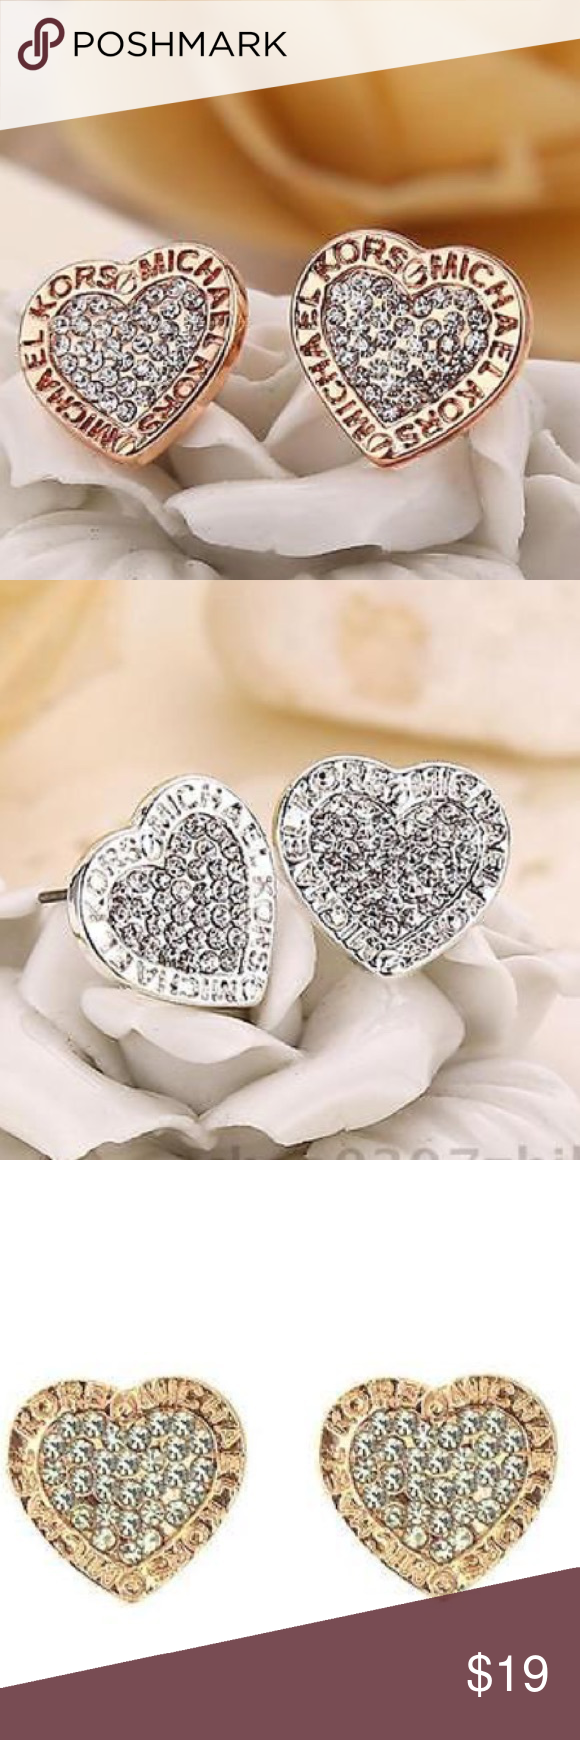 03b9ab387fdc4 Available in silver or gold or rose gold. Price for one pair only. Commect  down below after purchased for color Michael Kors Jewelry Earrings